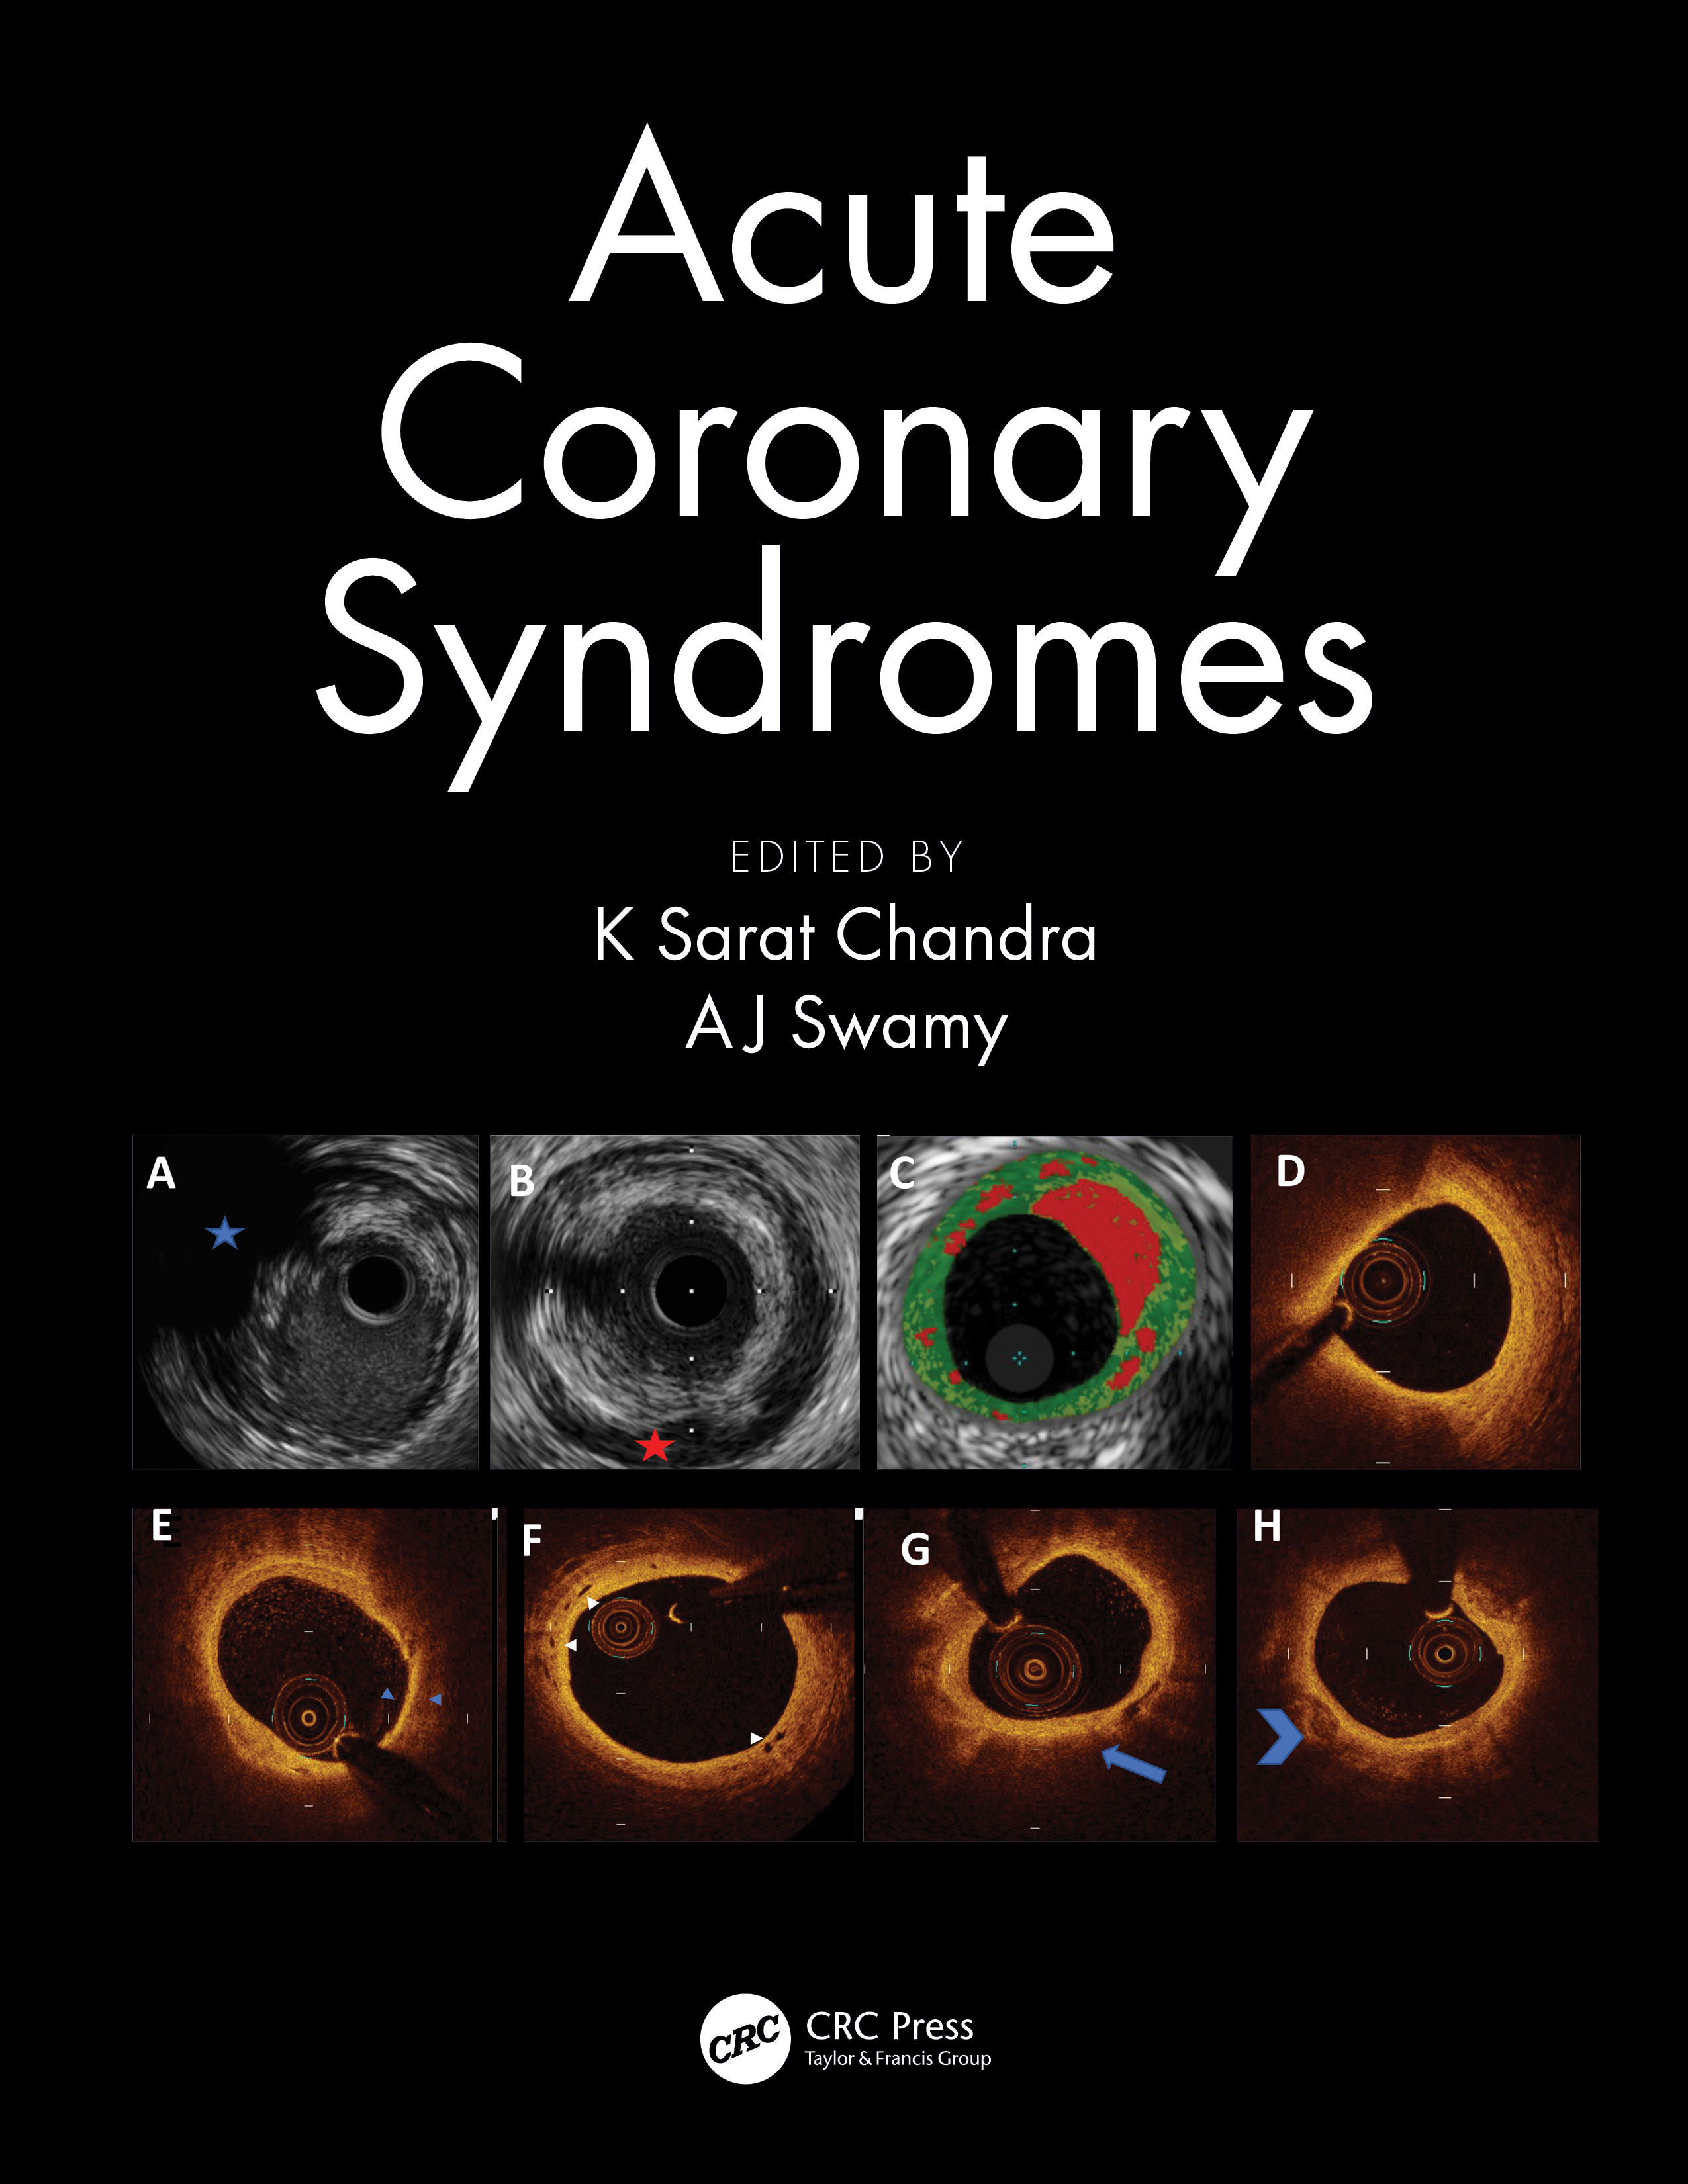 Acute Coronary Syndromes book cover